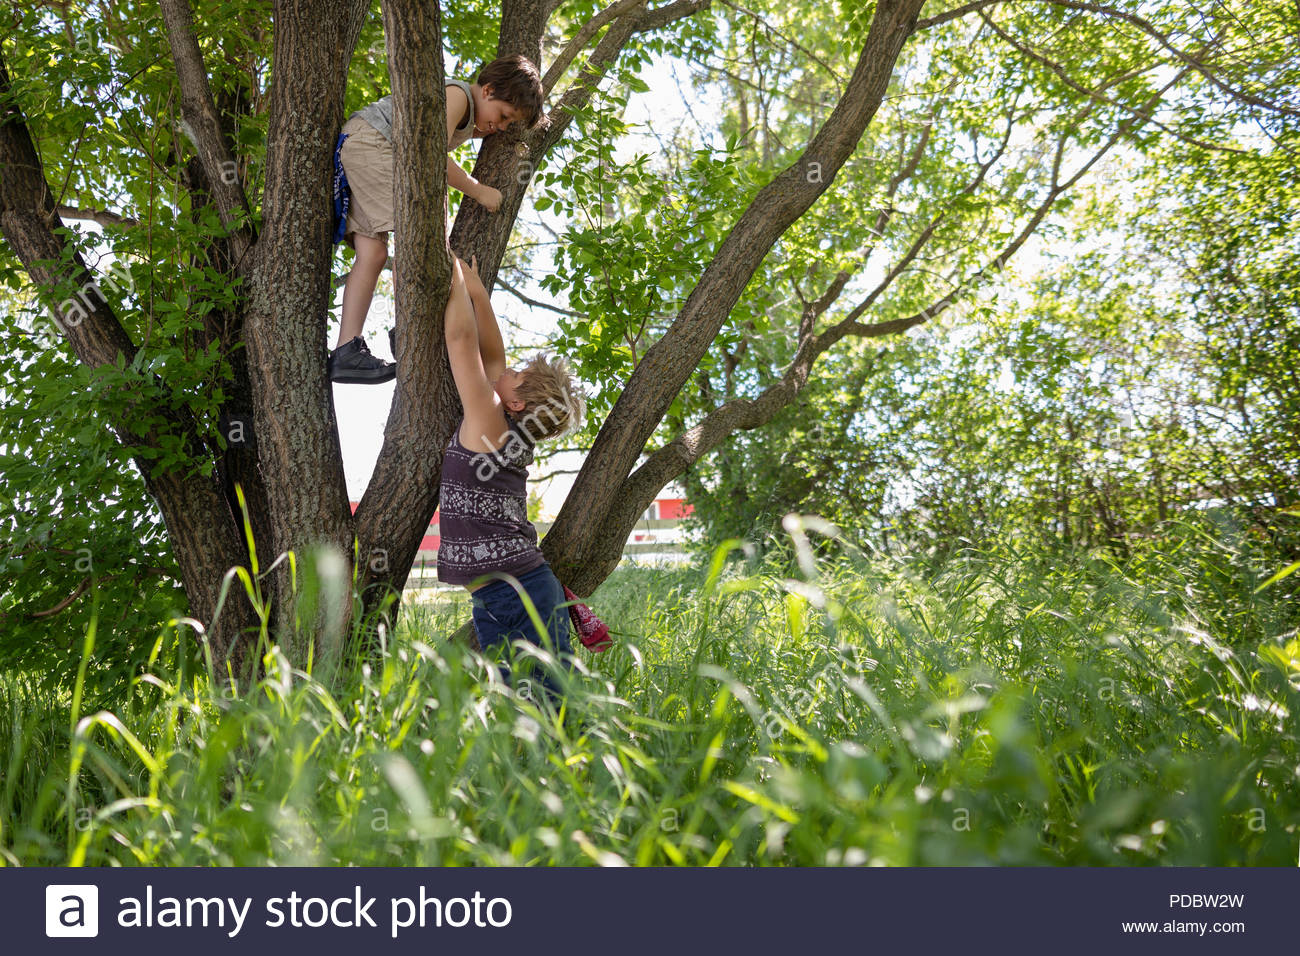 Brothers climbing lush green tree - Stock Image